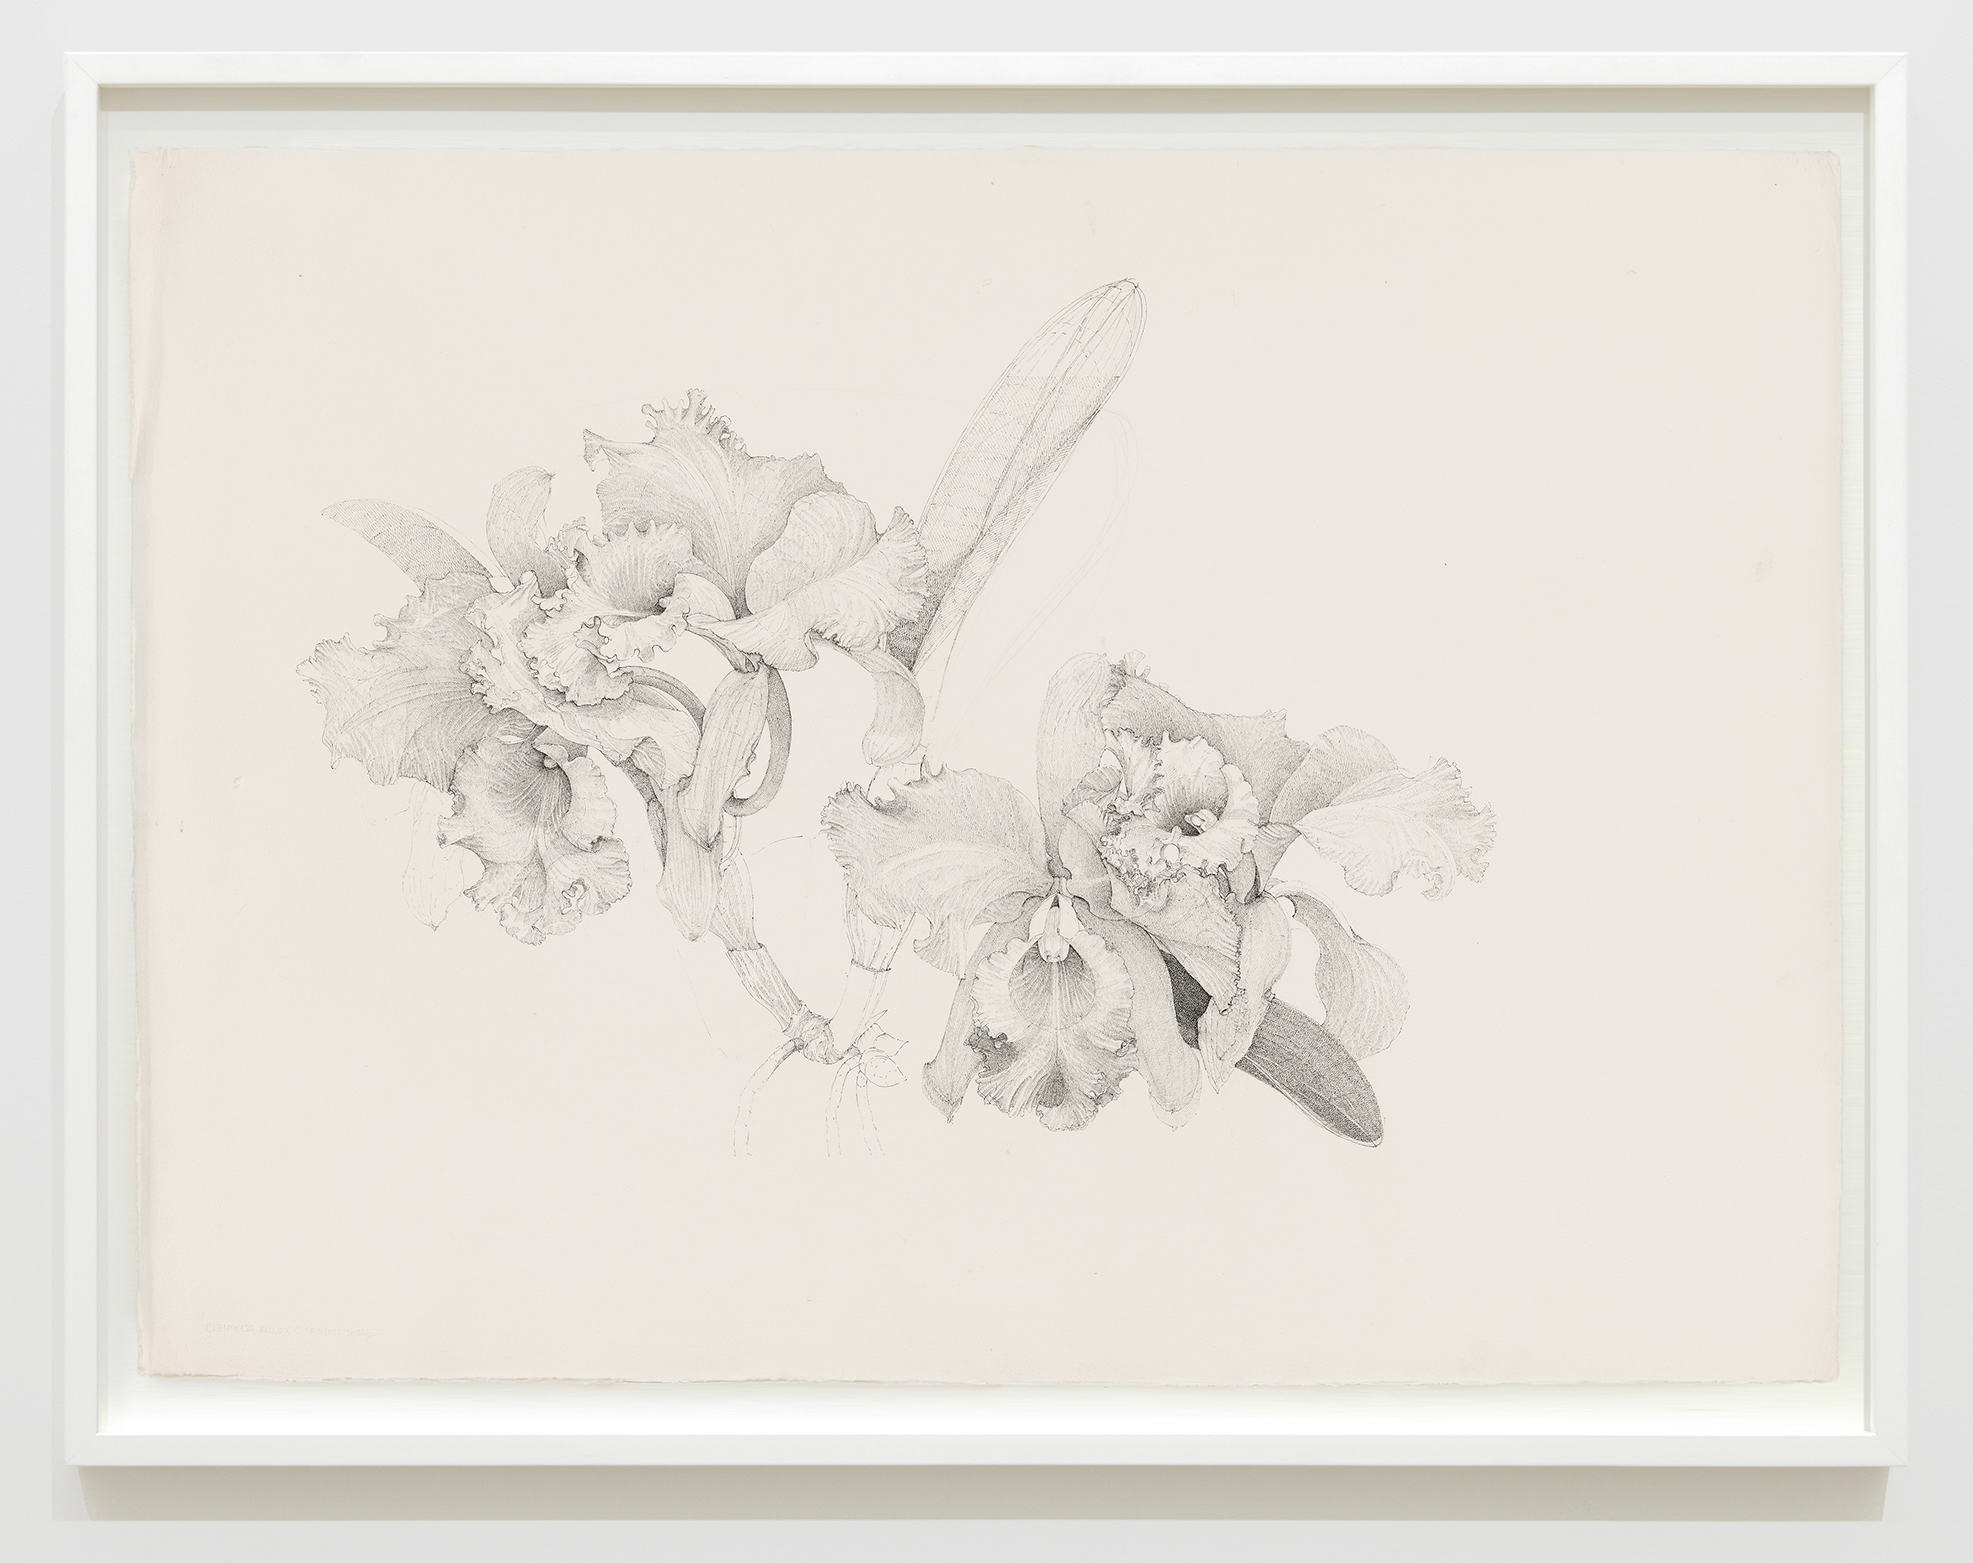 Charmian Johnson, C. Empress Bells X C. Princess Bells, unknown date, ink on paper, 26 x 34 in. (65 x 85 cm) by